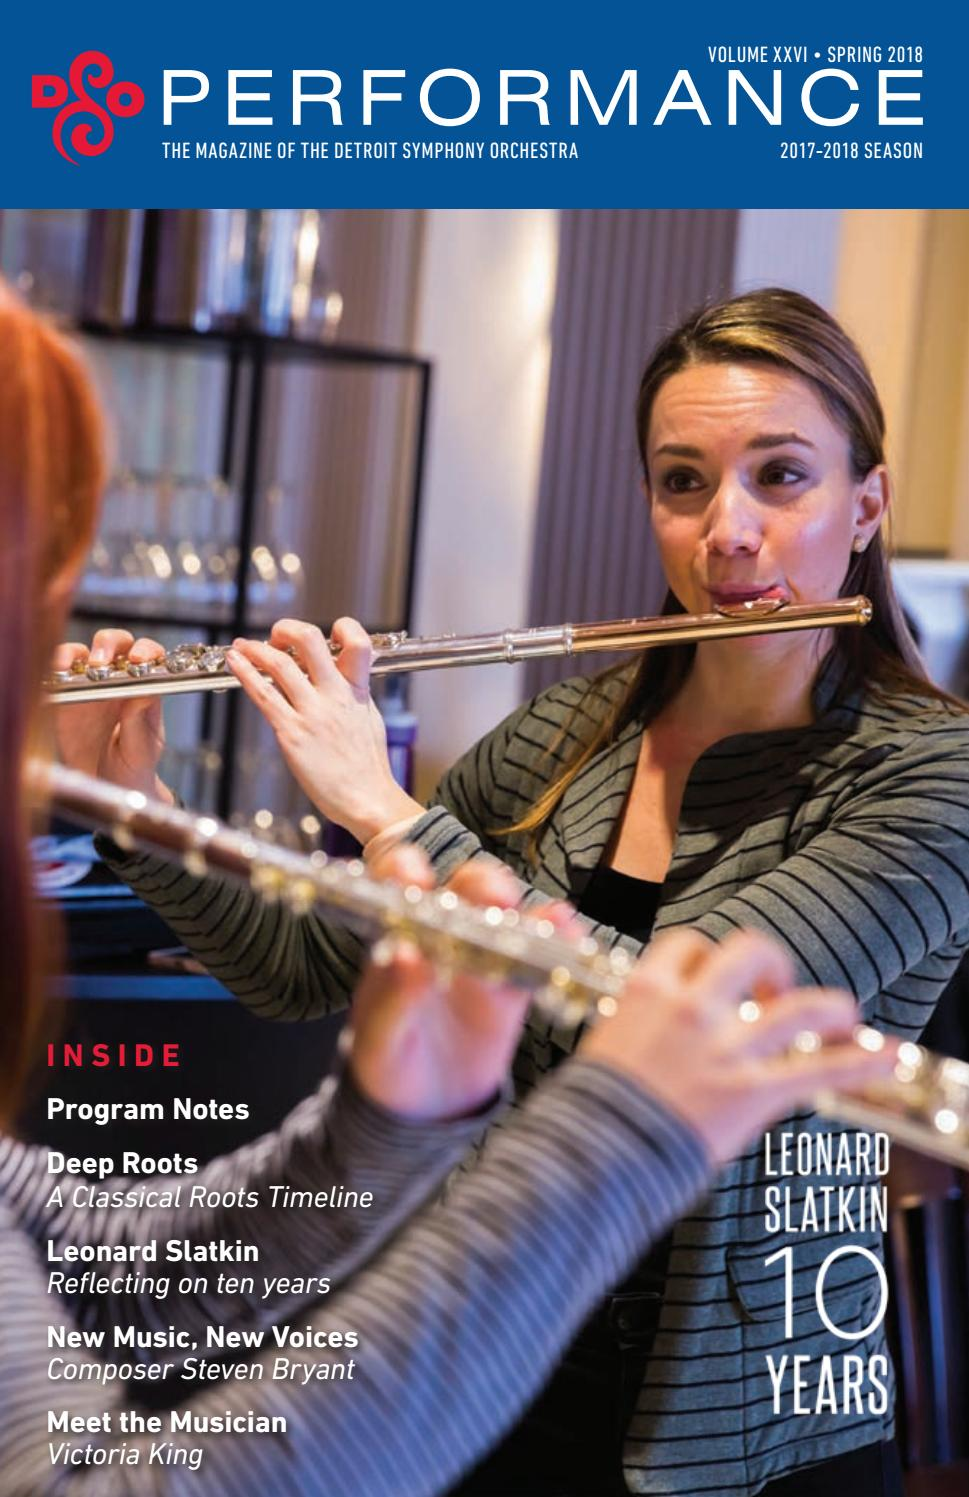 DSO Spring 2017 Performance Magazine - Edition 1 by Detroit Symphony